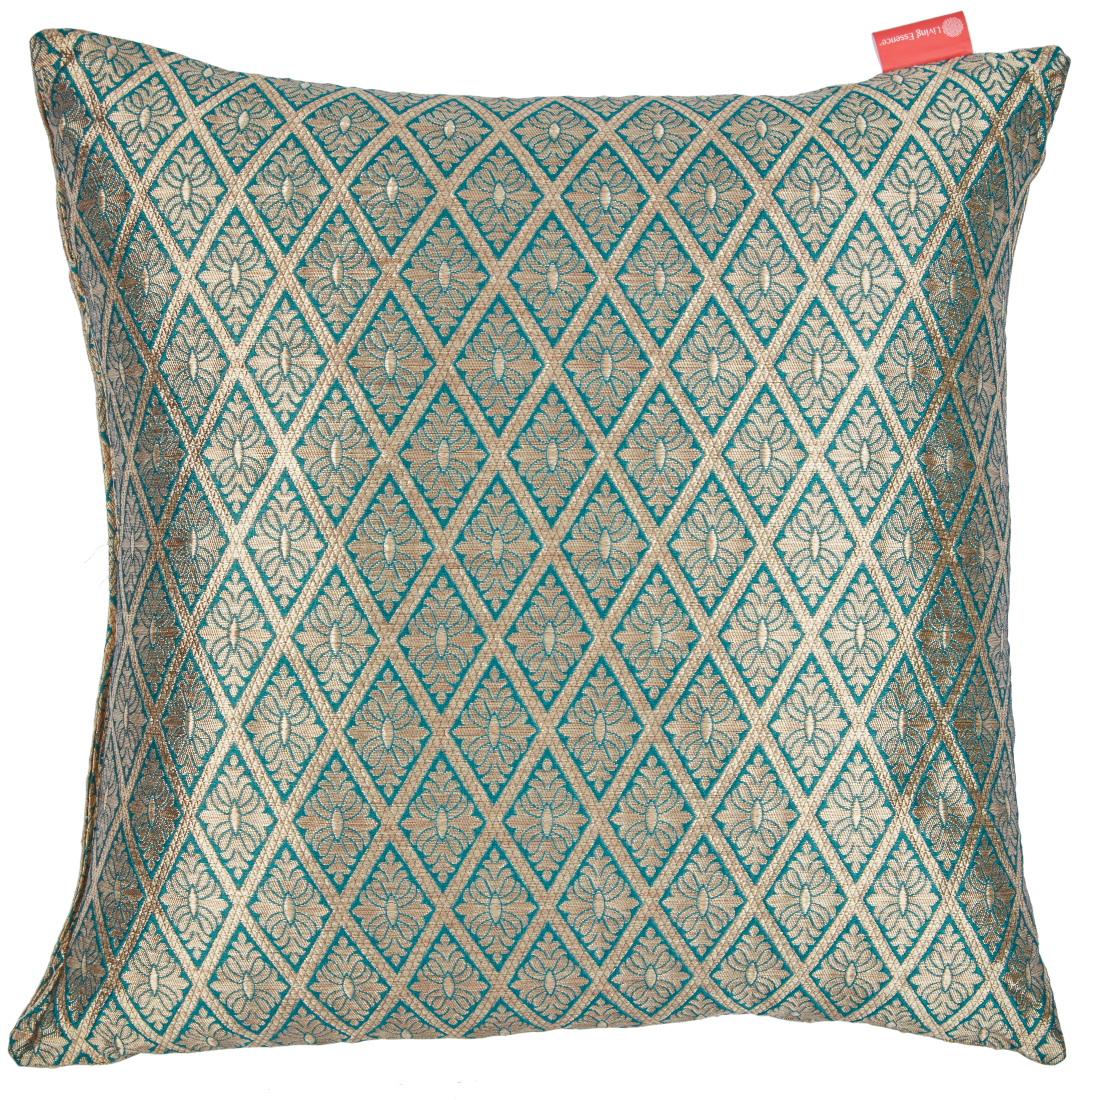 Filled Cushion Miraya Teal Beige Brocade Cushion Fillers in Brocade Colour by Living Essence